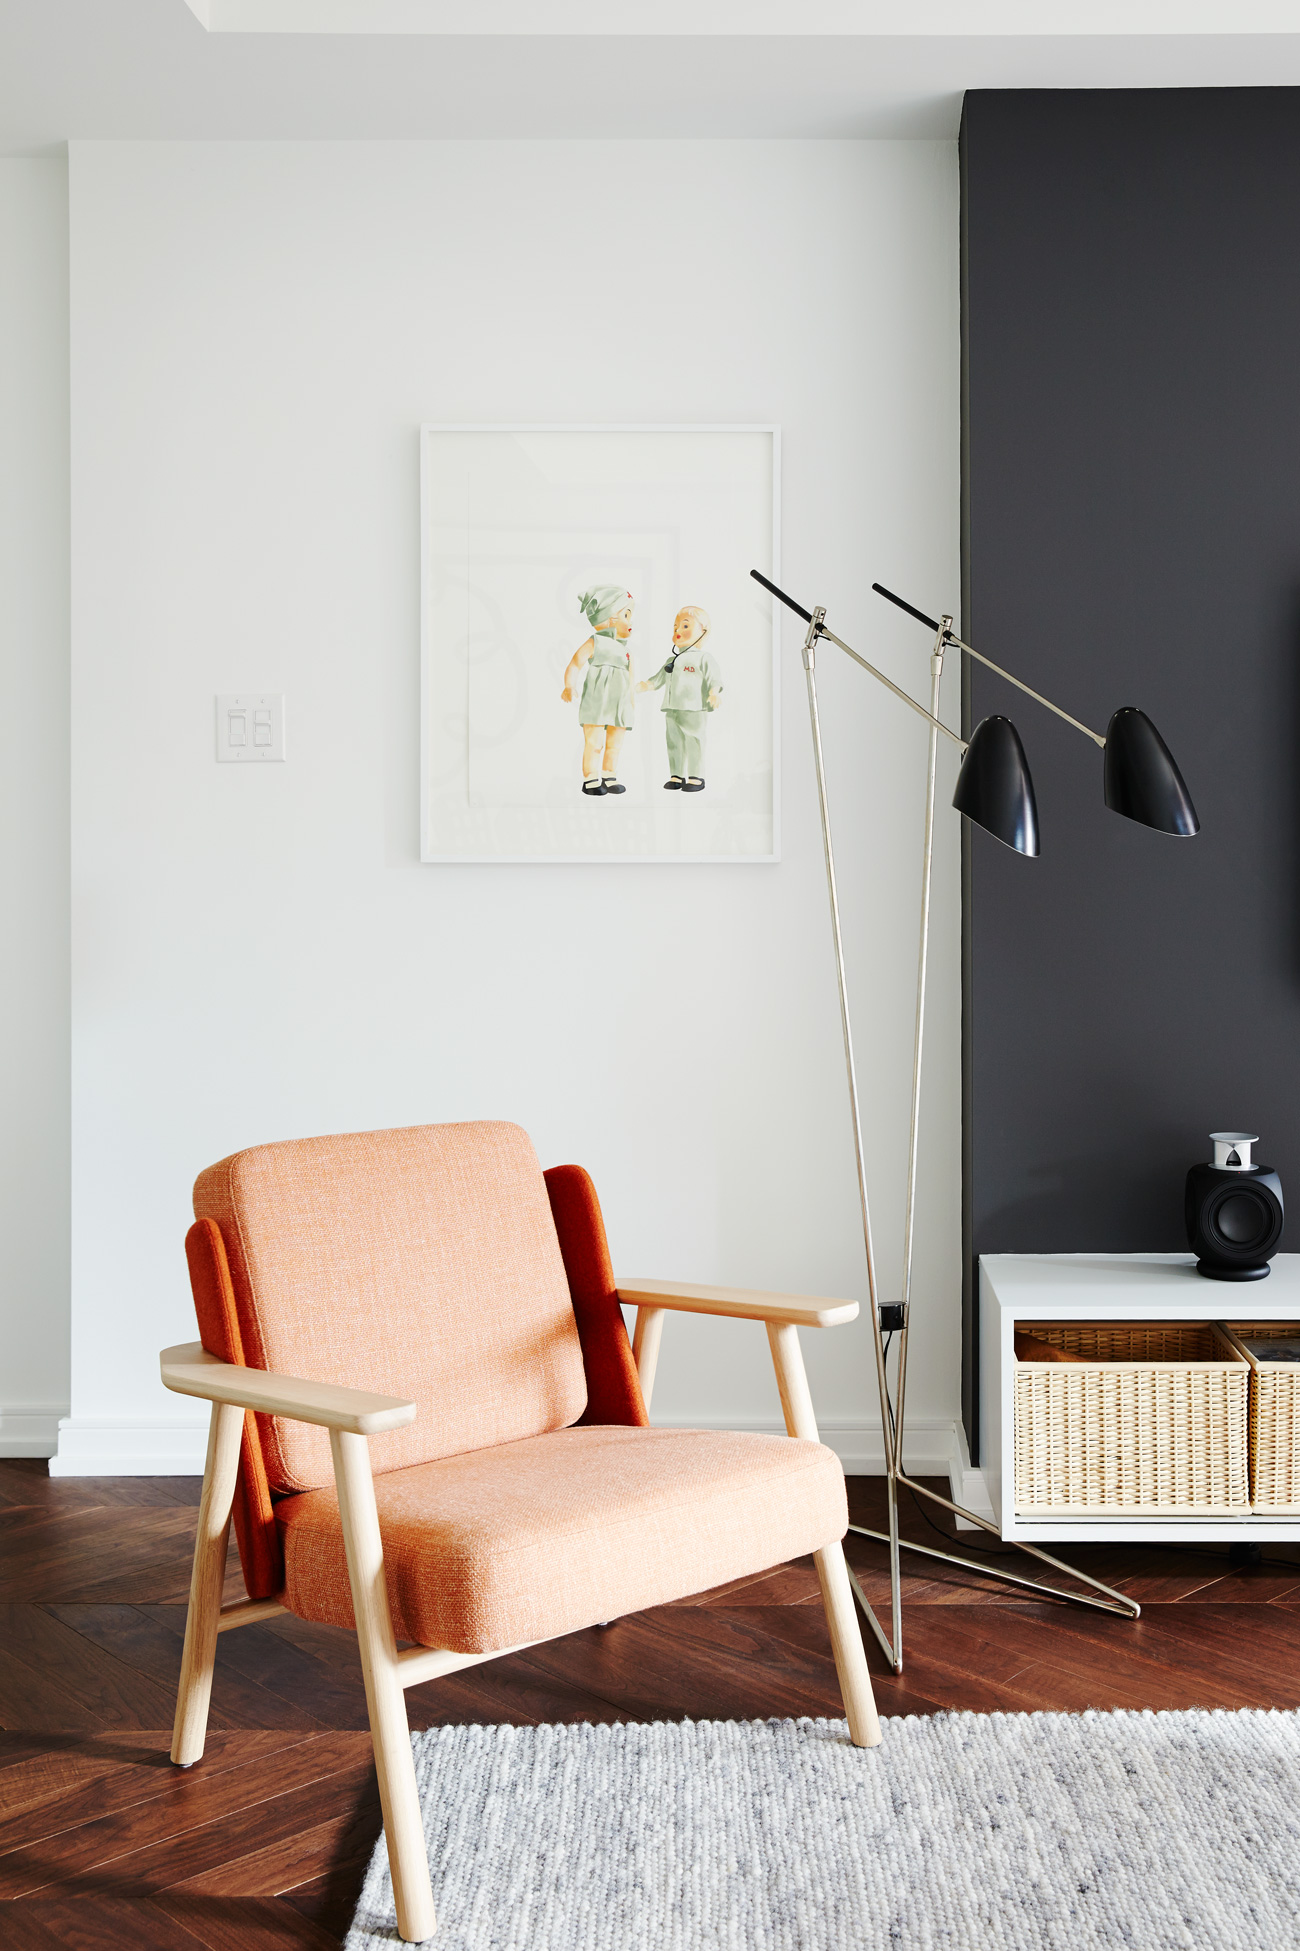 Artful vignettes abound. Chair by Alki; giclee print by Heather Millar; lamp from Avenue Road; console designed by Milne.